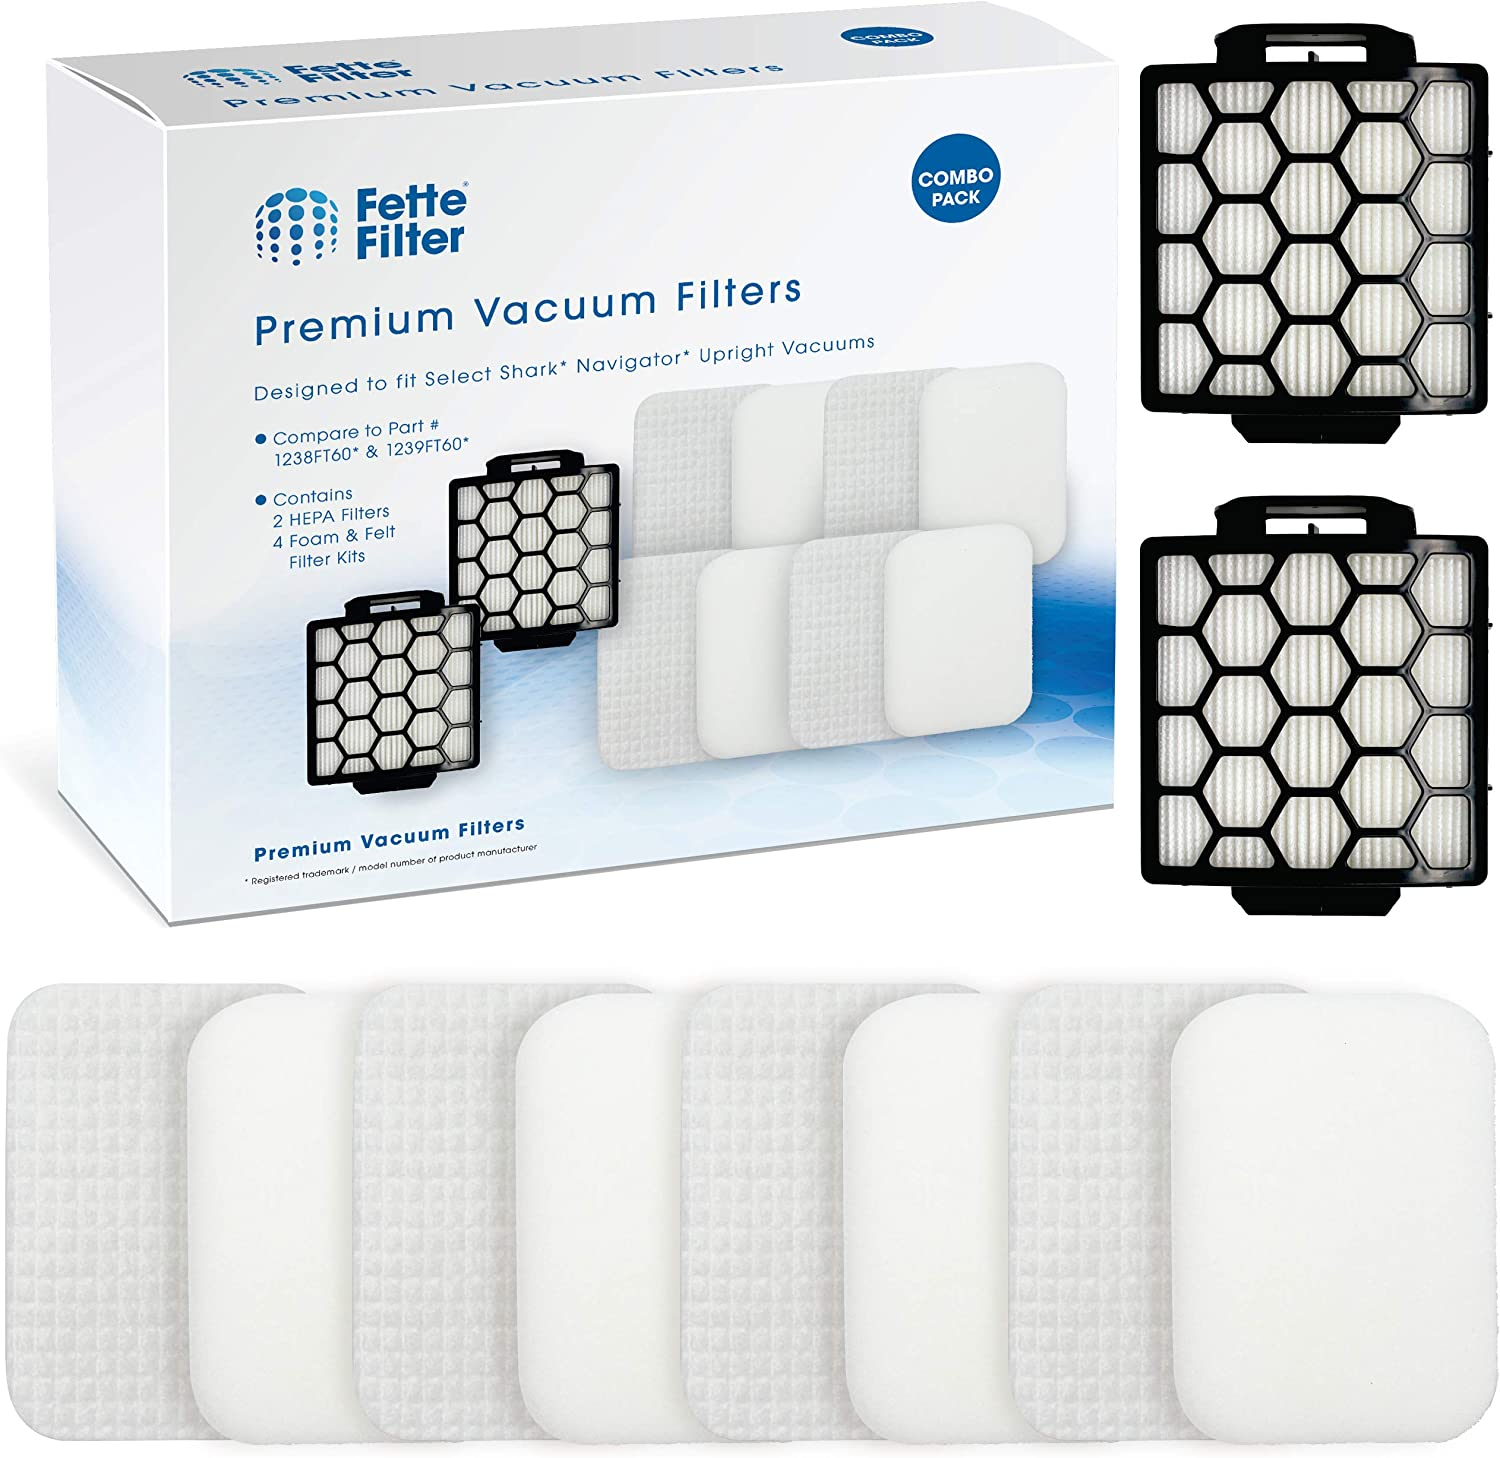 Fette Filter 2 HEPA & 4 Foam Filters for Shark Navigator Pet Plus NV150, NV251,NV255 and Zero-M Self-Cleaning Brushroll Pet Pro ZU62,ZU62C,ZU60 Upright Vacuum, Replacement Parts # 1238FT60 & 1239FT60